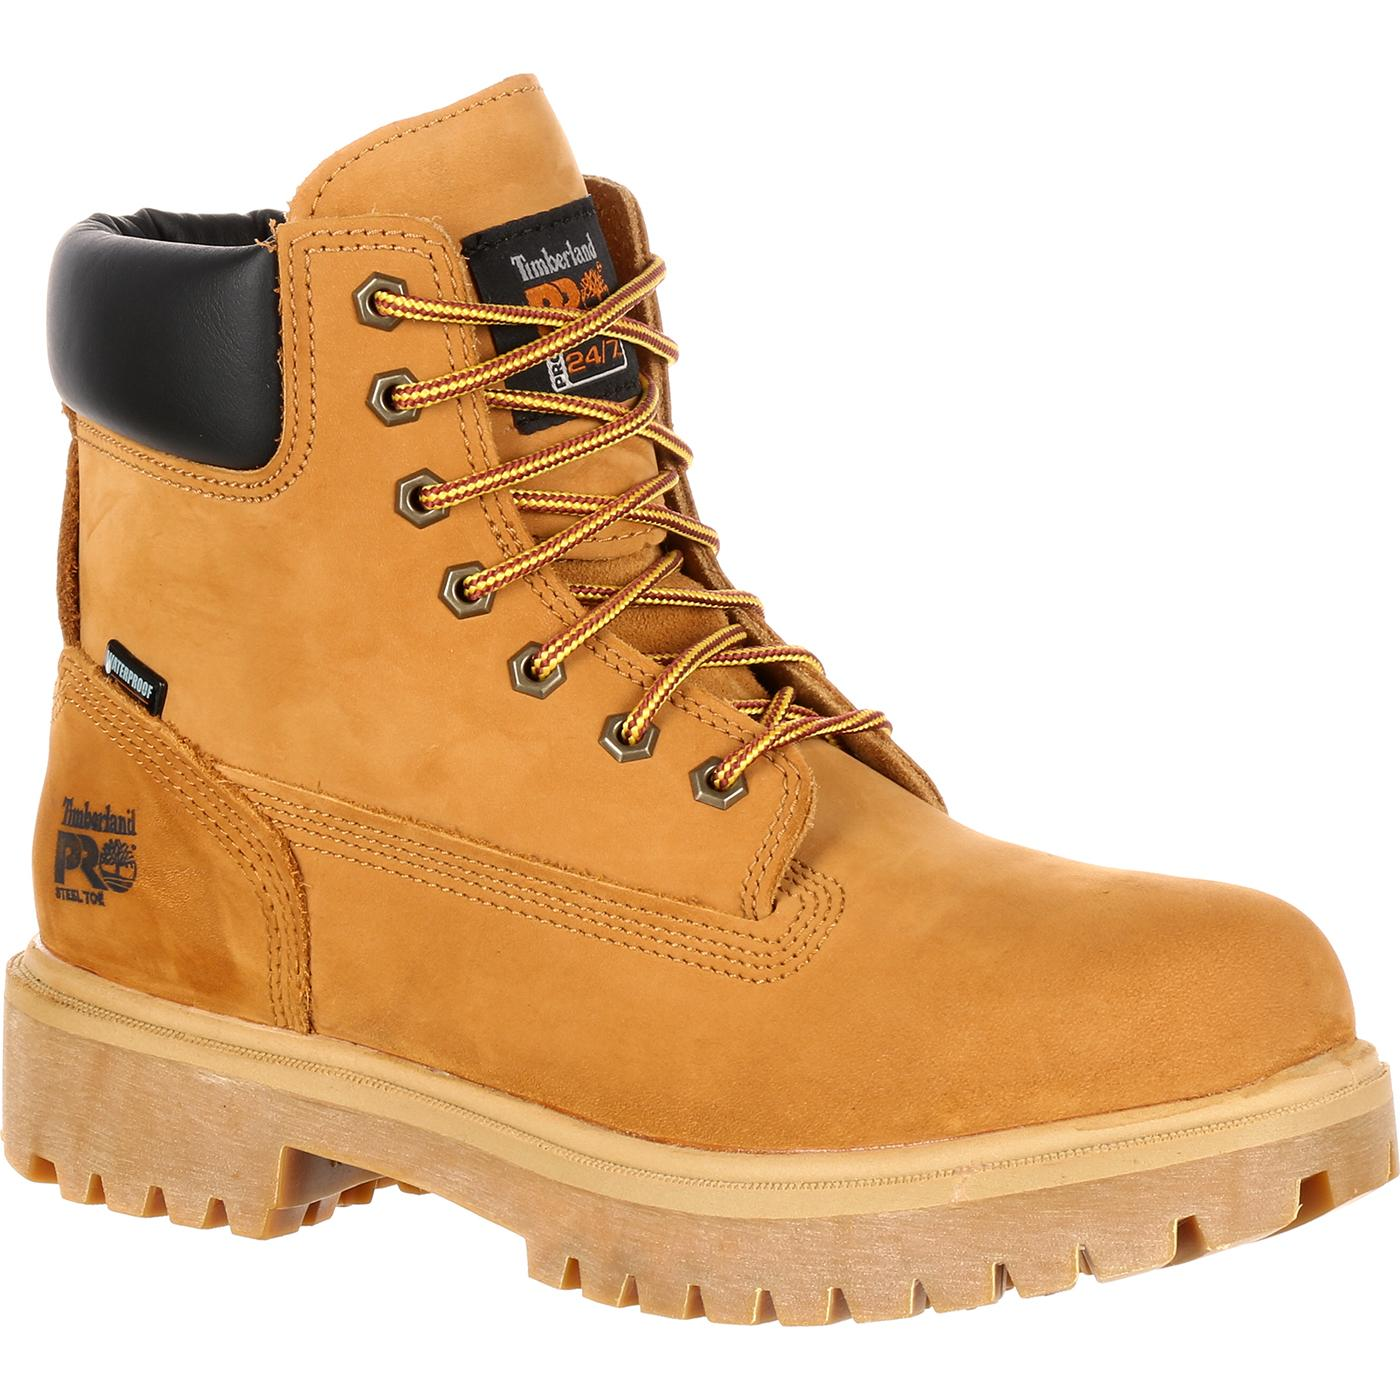 Timberland PRO Steel Toe Waterproof Insulated Work Boots, 65016